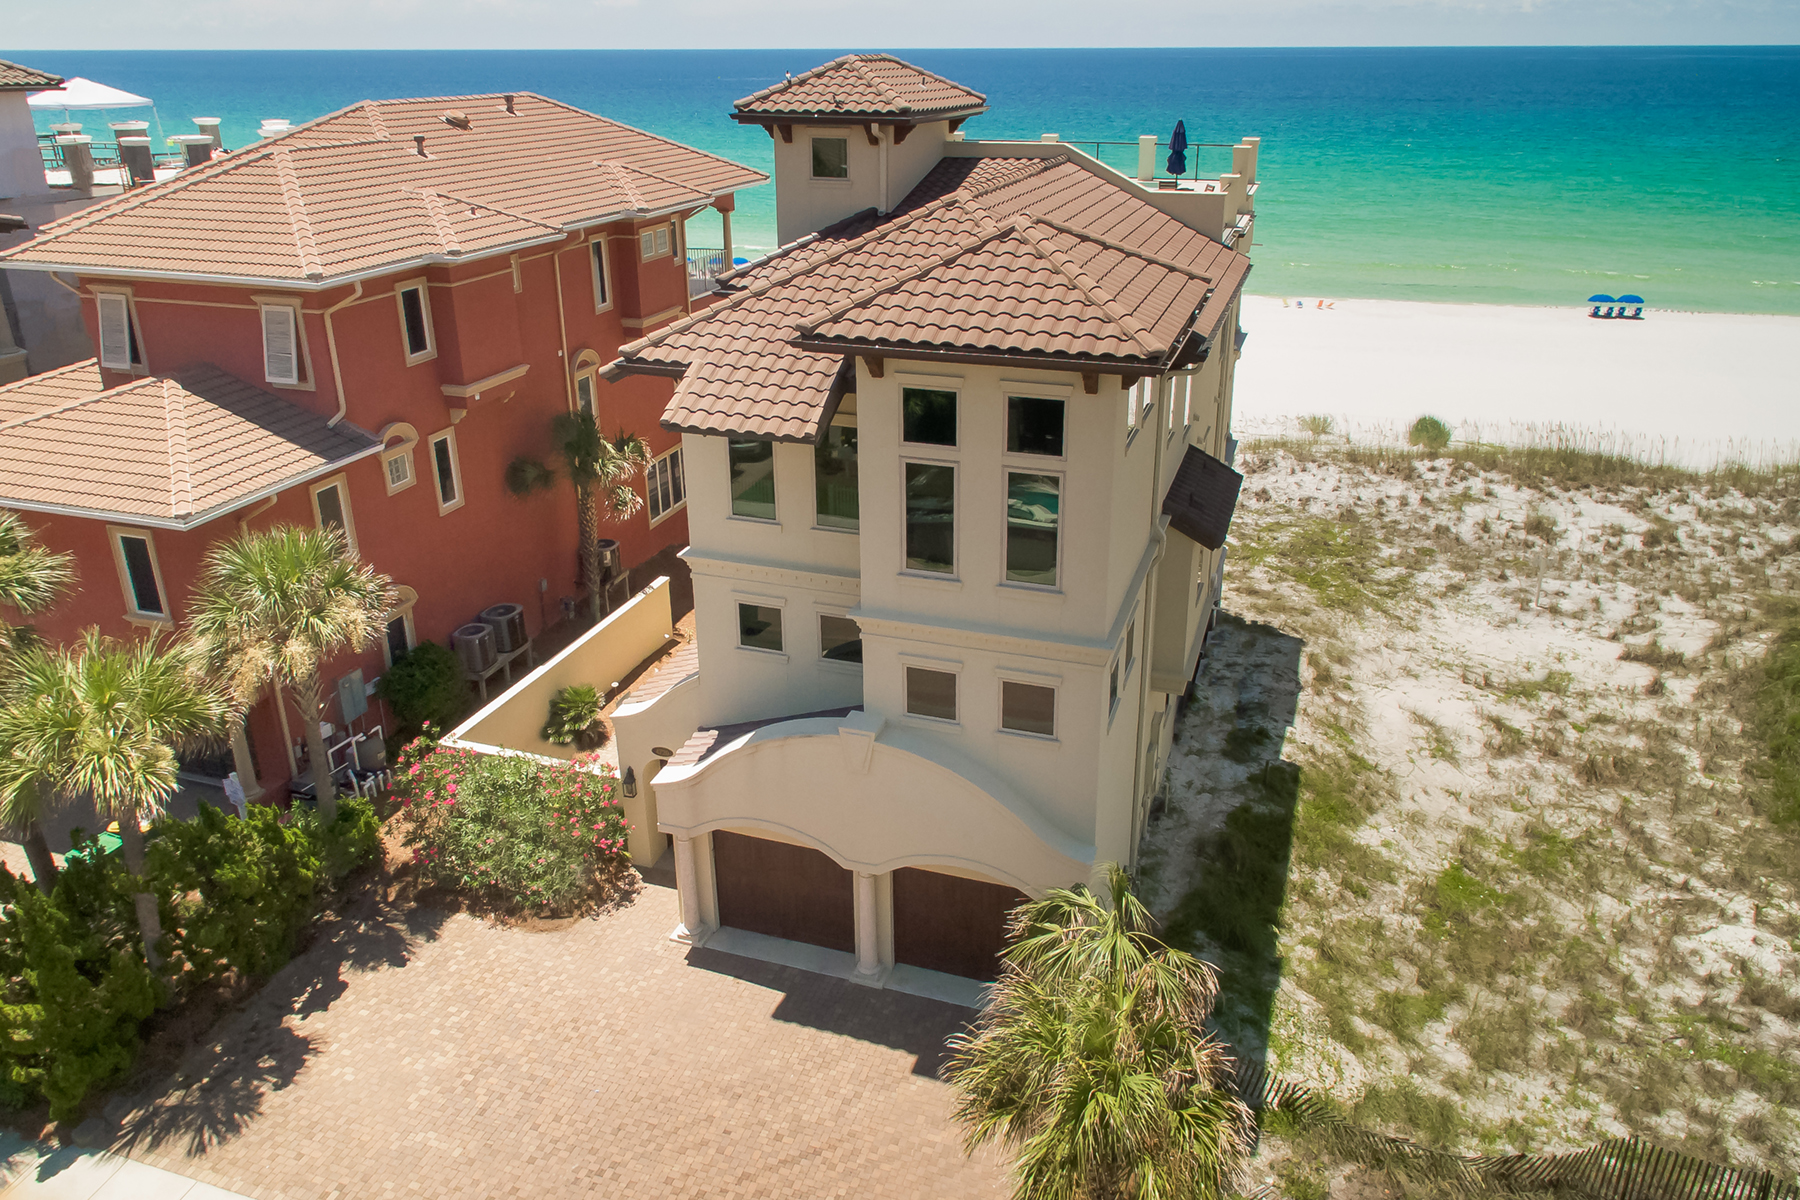 Single Family Homes for Sale at Expansive Mediterranean Gulf Front Escape 4720 Ocean Blvd Destin, Florida 32541 United States